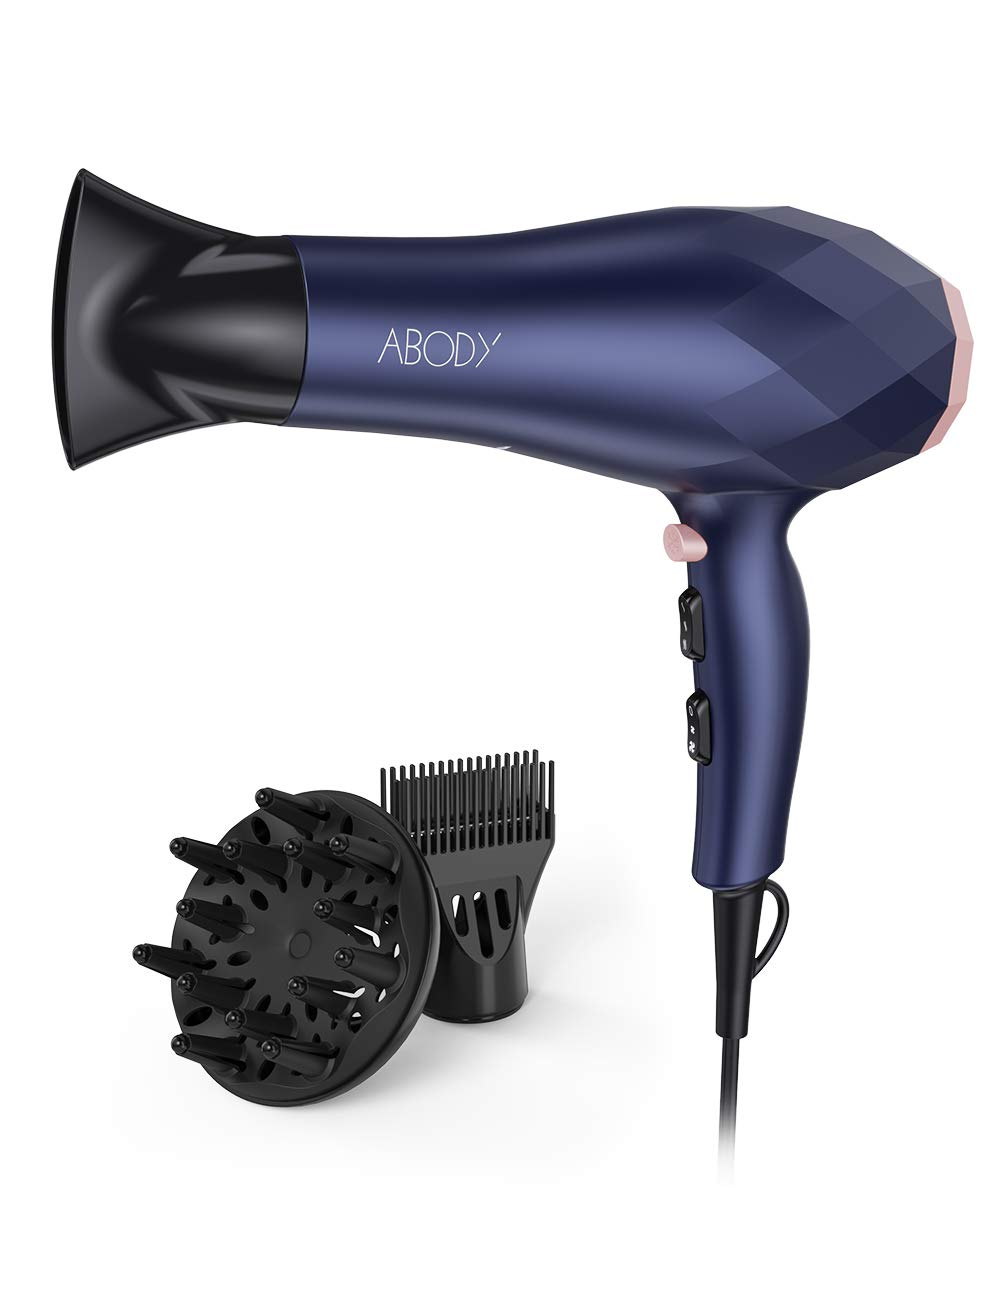 Abody 1875W Professional Hair Dryer, Negative Ion Blow Dryer 2 Speed and 3 Heat Setting, Quick Dry Light Weight Low Noise Hair Dryers with Diffuser & Concentrator & Comb